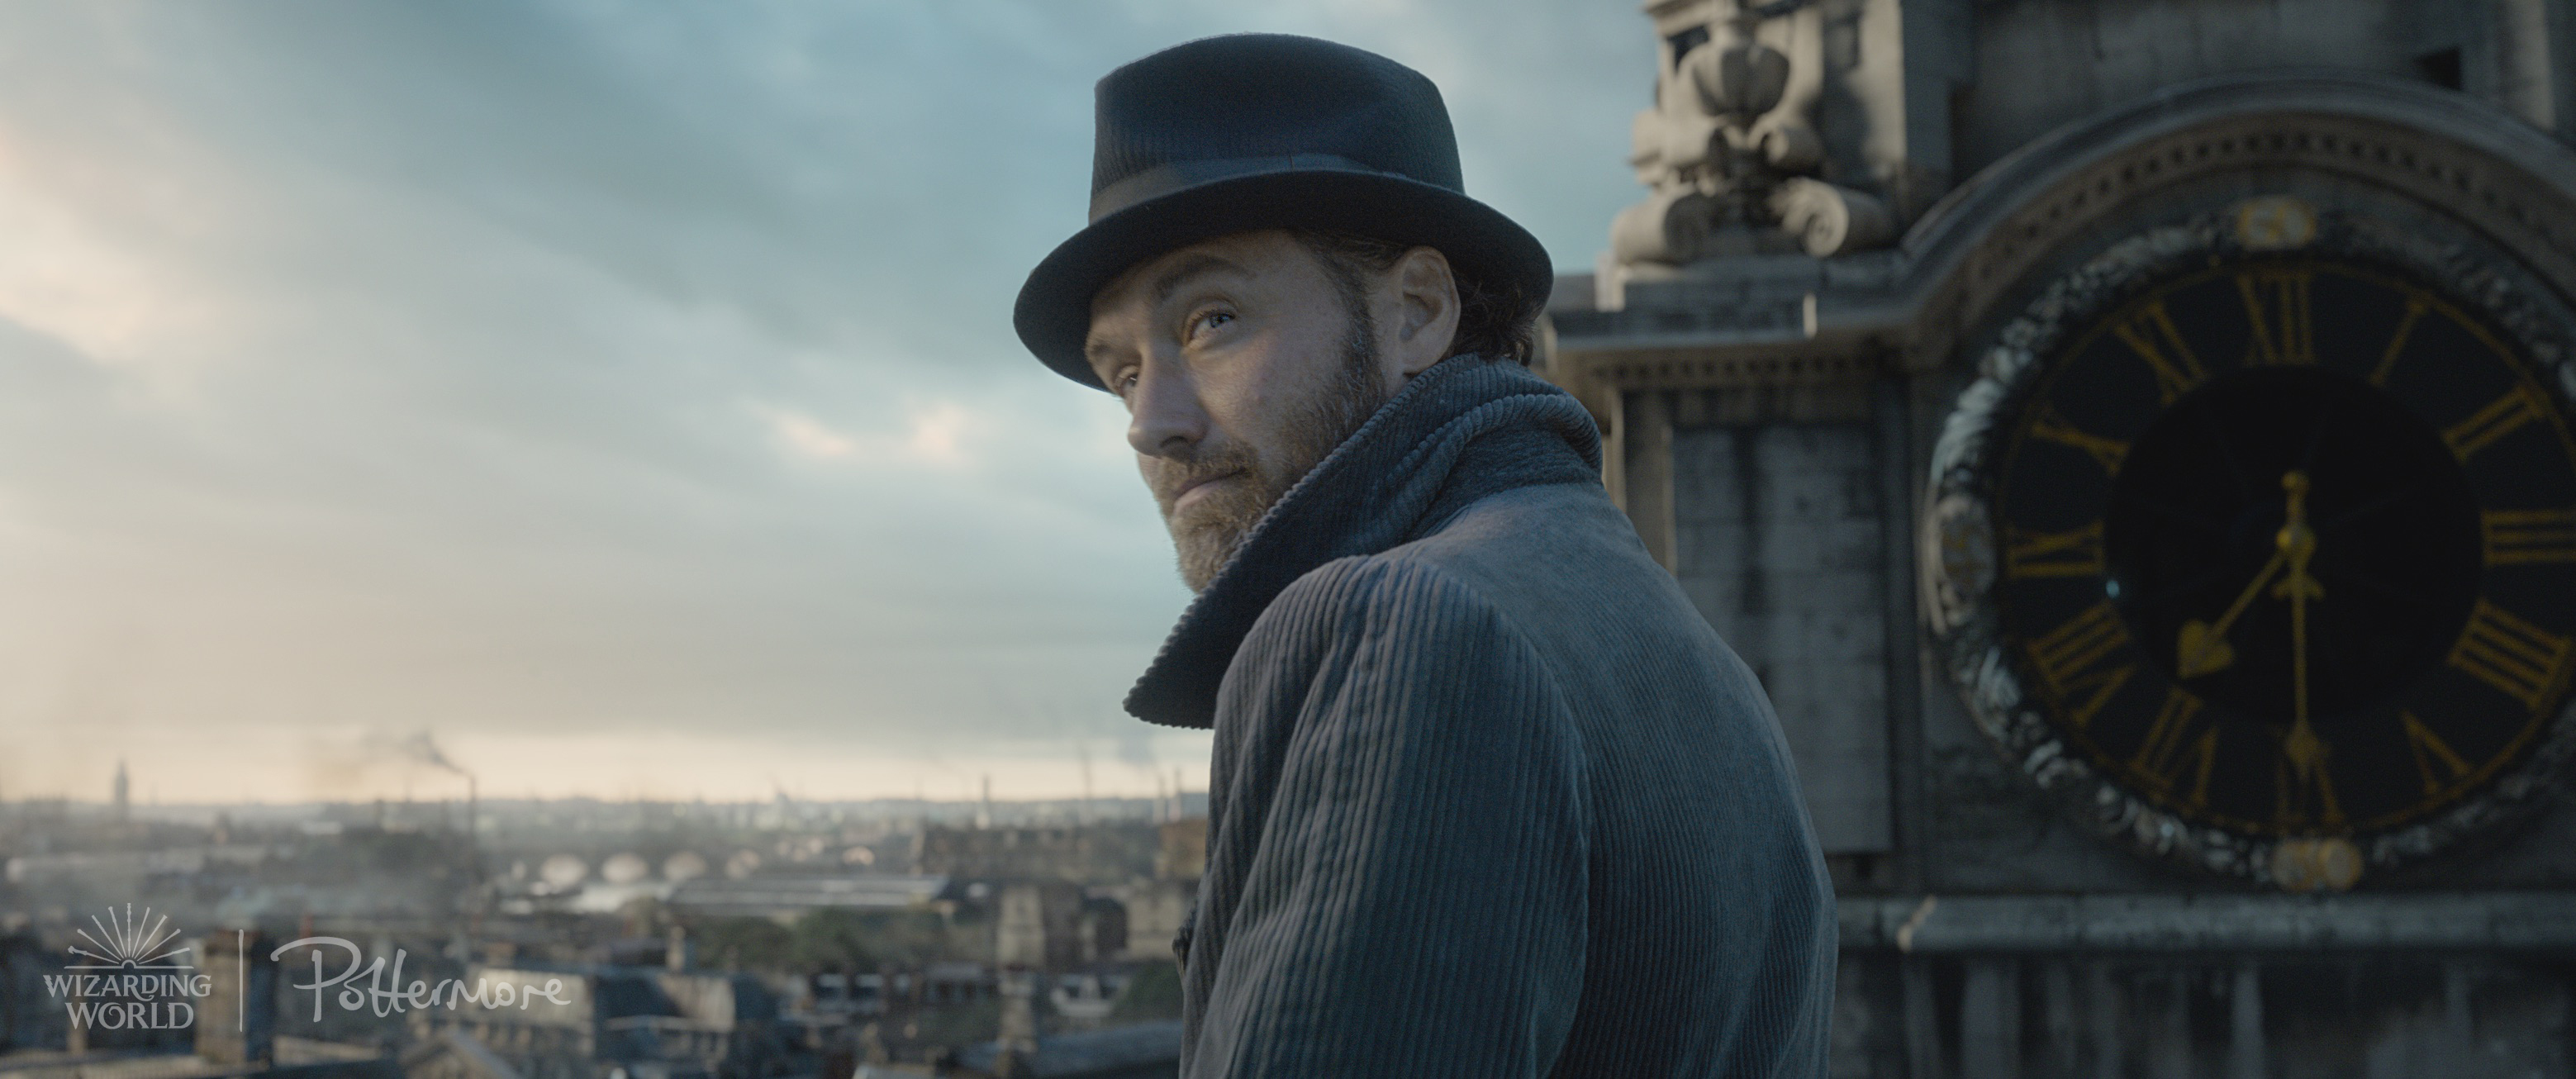 Albus Dumbledore on the roof of St Paul's from the Fantastic Beasts: Crimes of Grindelwald trailer